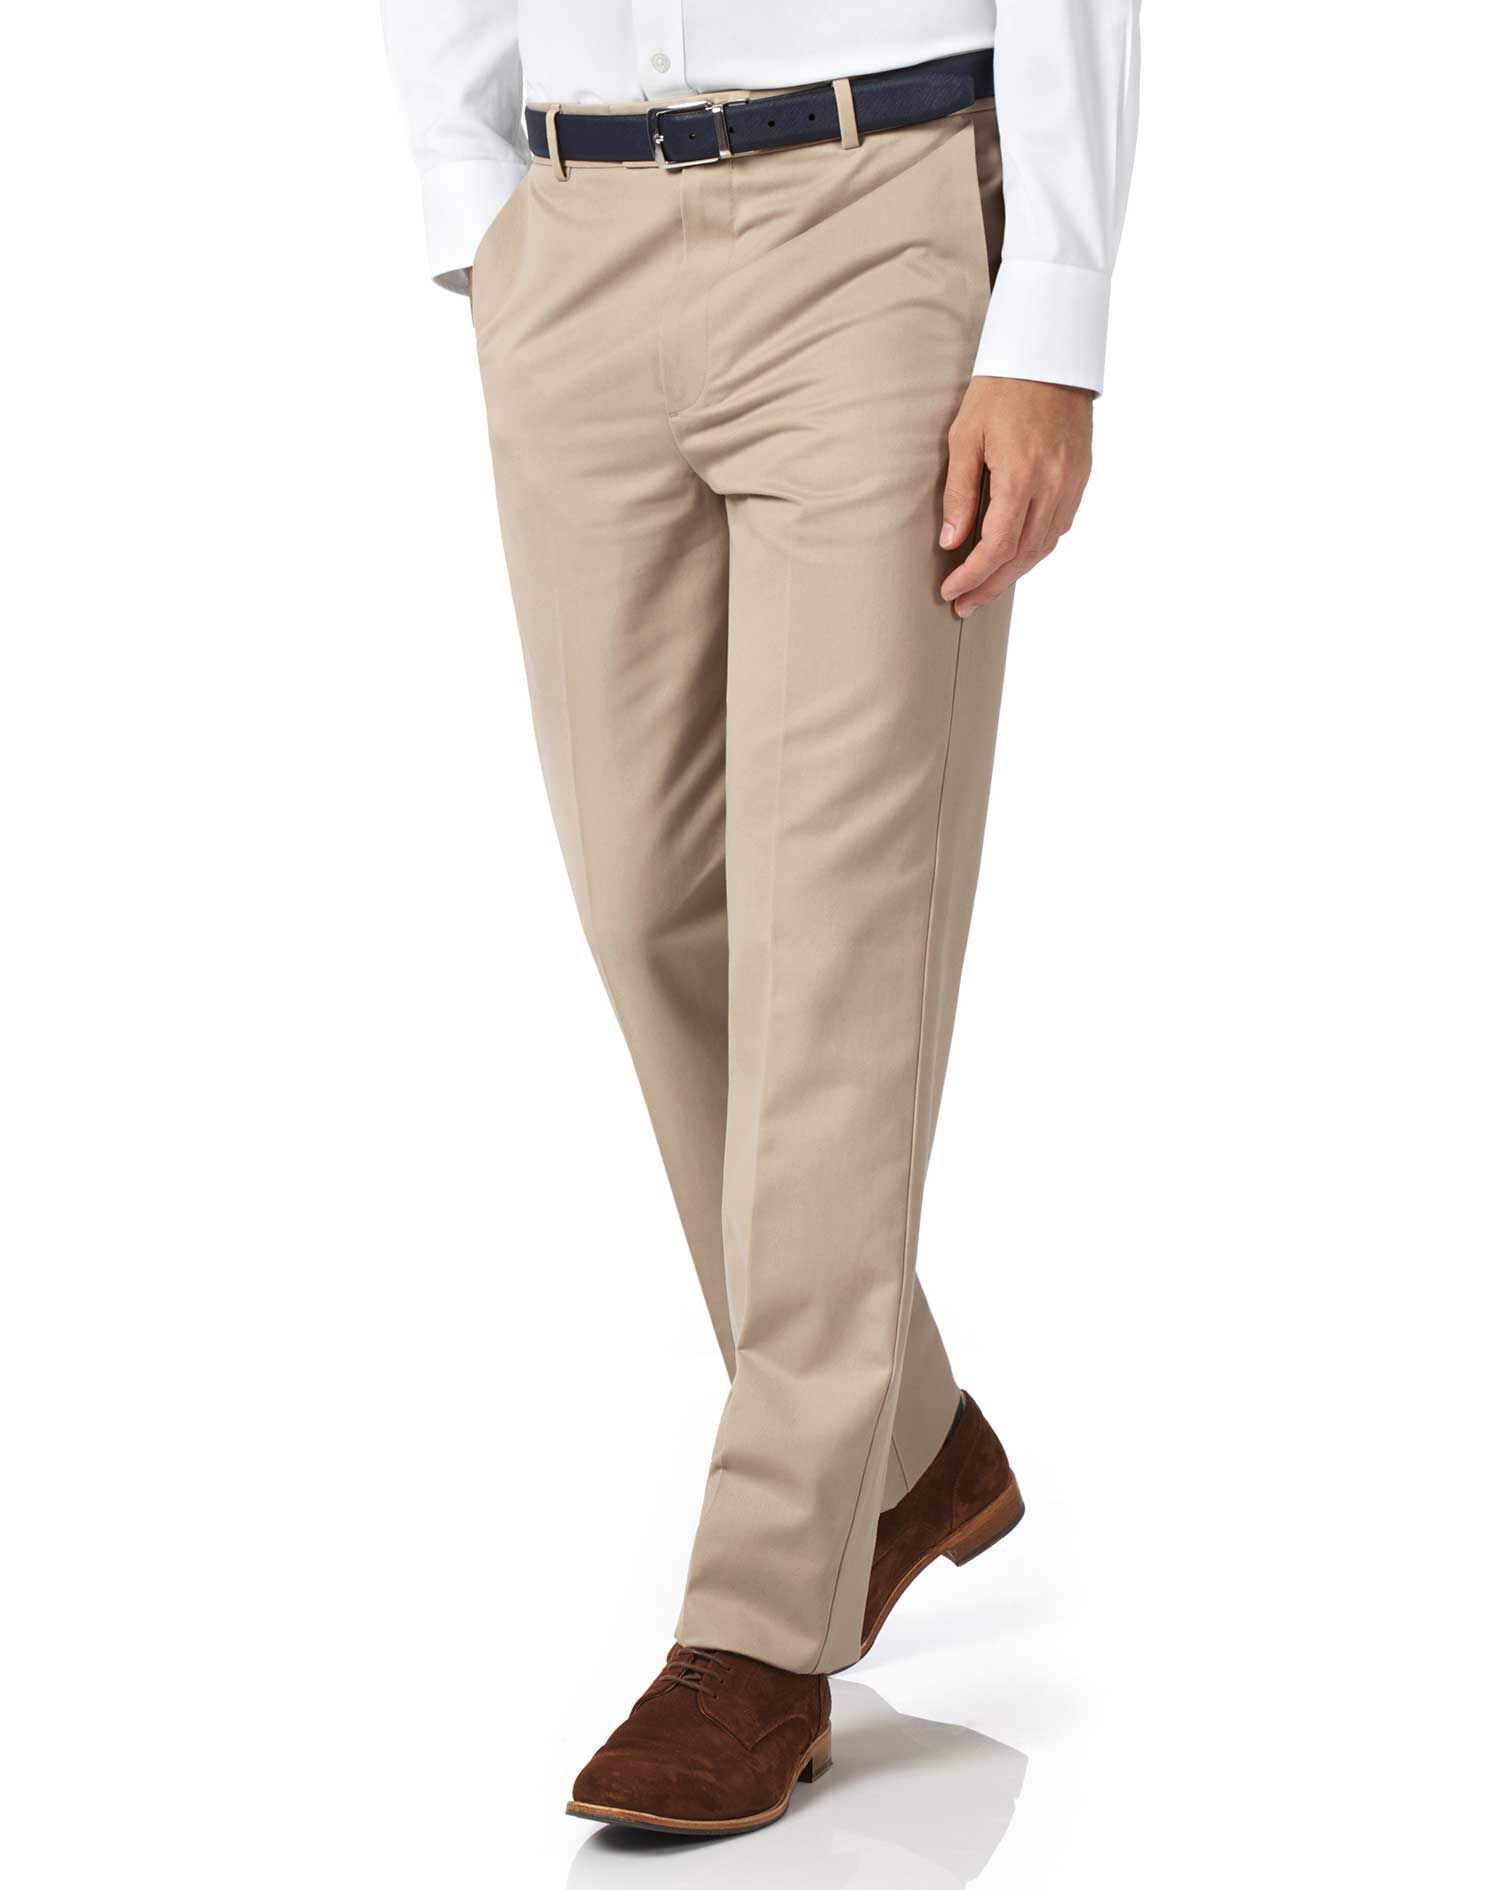 Stone Classic Fit Flat Front Non-Iron Cotton Chino Trousers Size W36 L38 by Charles Tyrwhitt